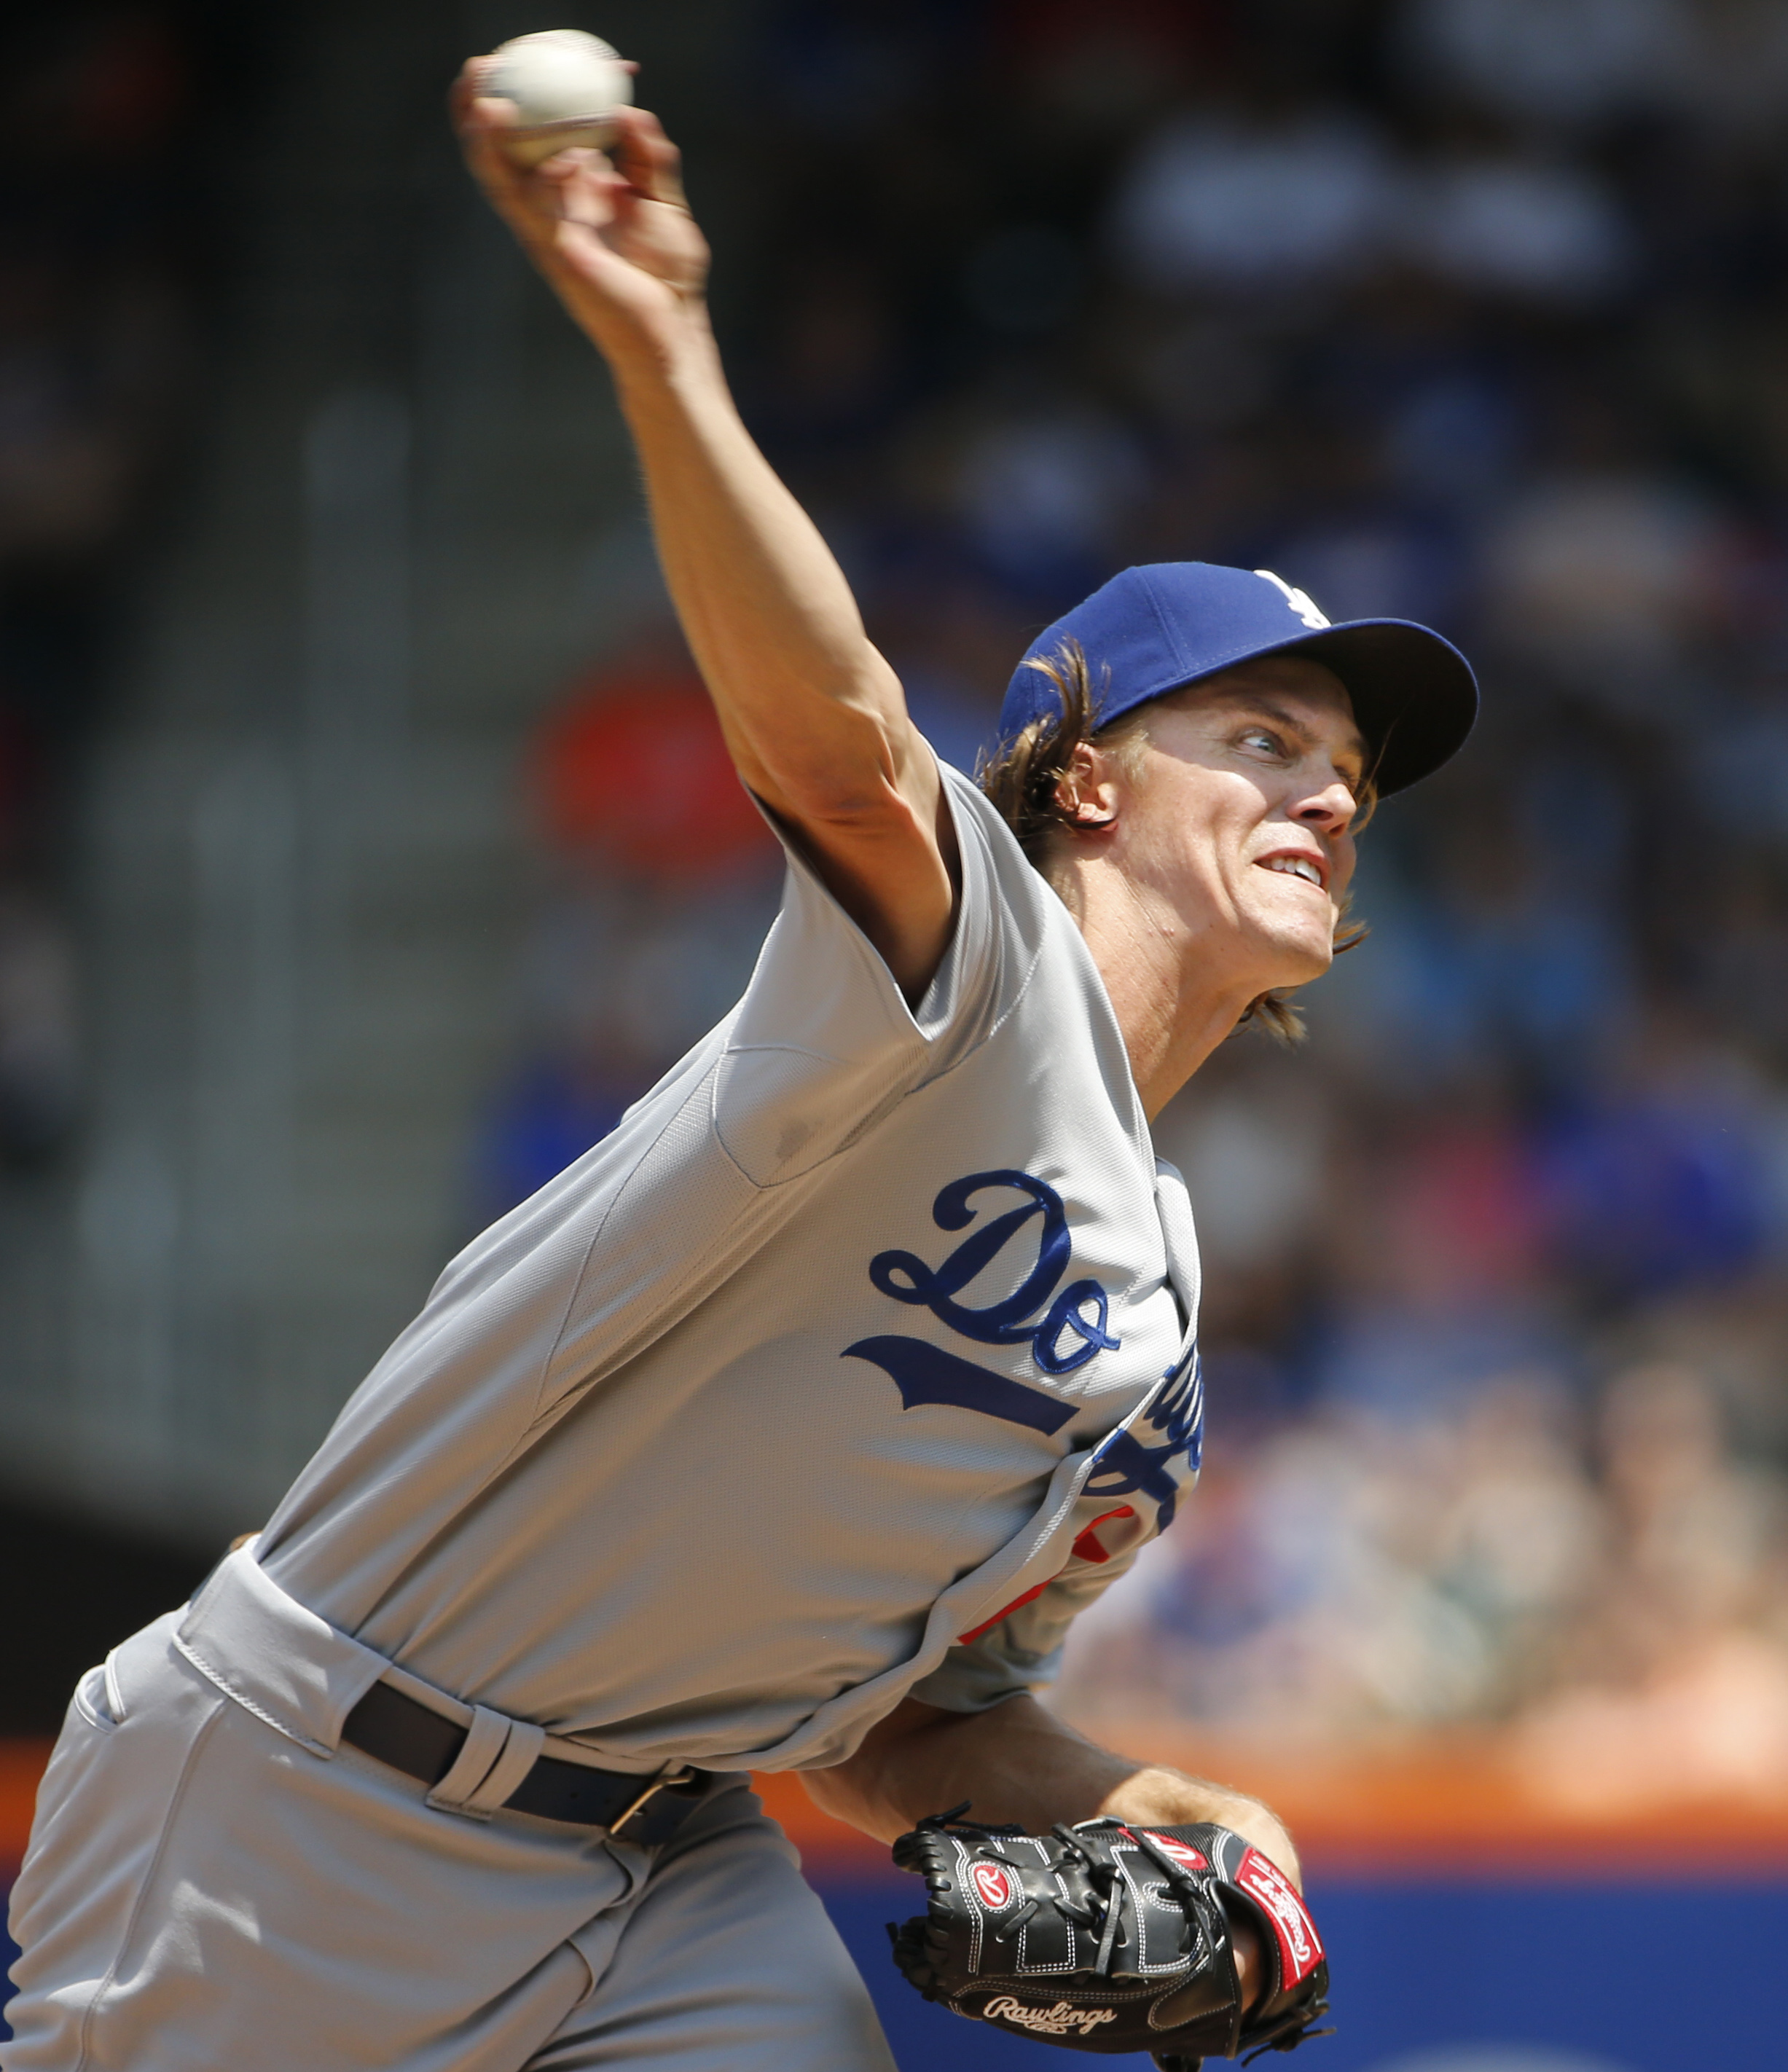 Los Angeles Dodgers starting pitcher Zack Greinke delivers during the first inning of a baseball game against the New York Mets in New York, Sunday, July 26, 2015. (AP Photo/Kathy Willens)